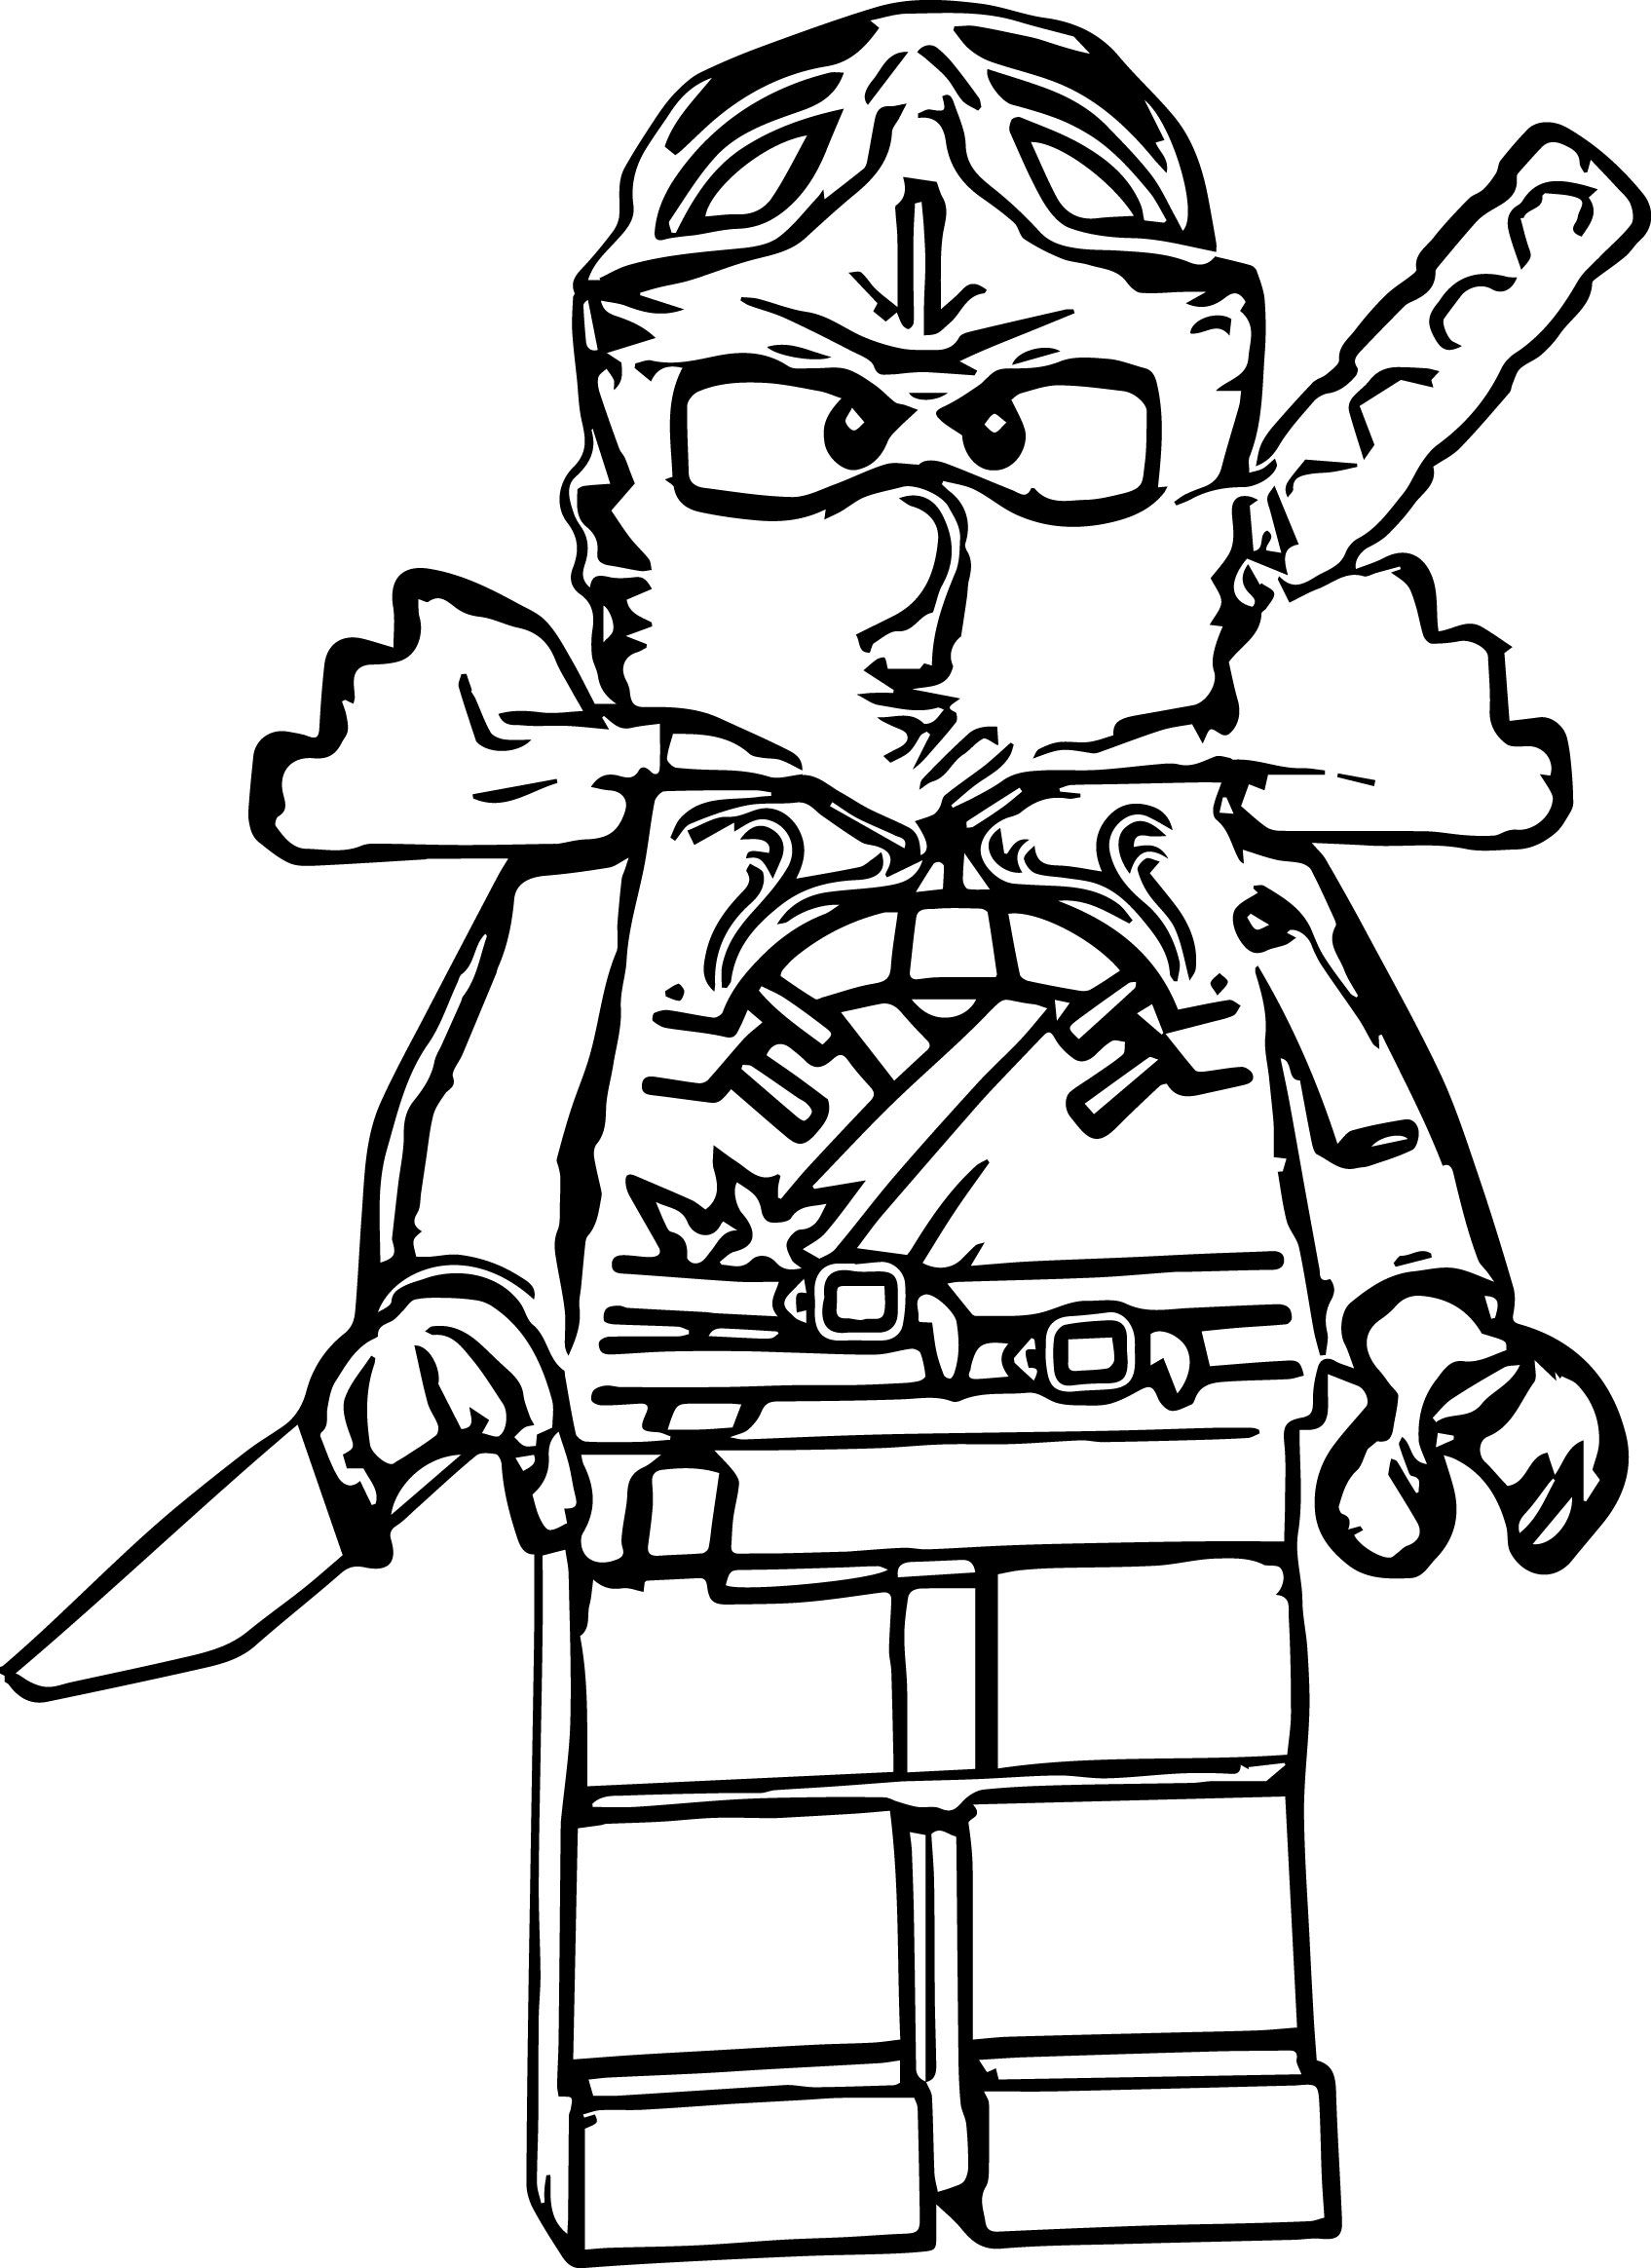 Awesome Ninjago Coloring Pages Check More At Http Wecoloringpage